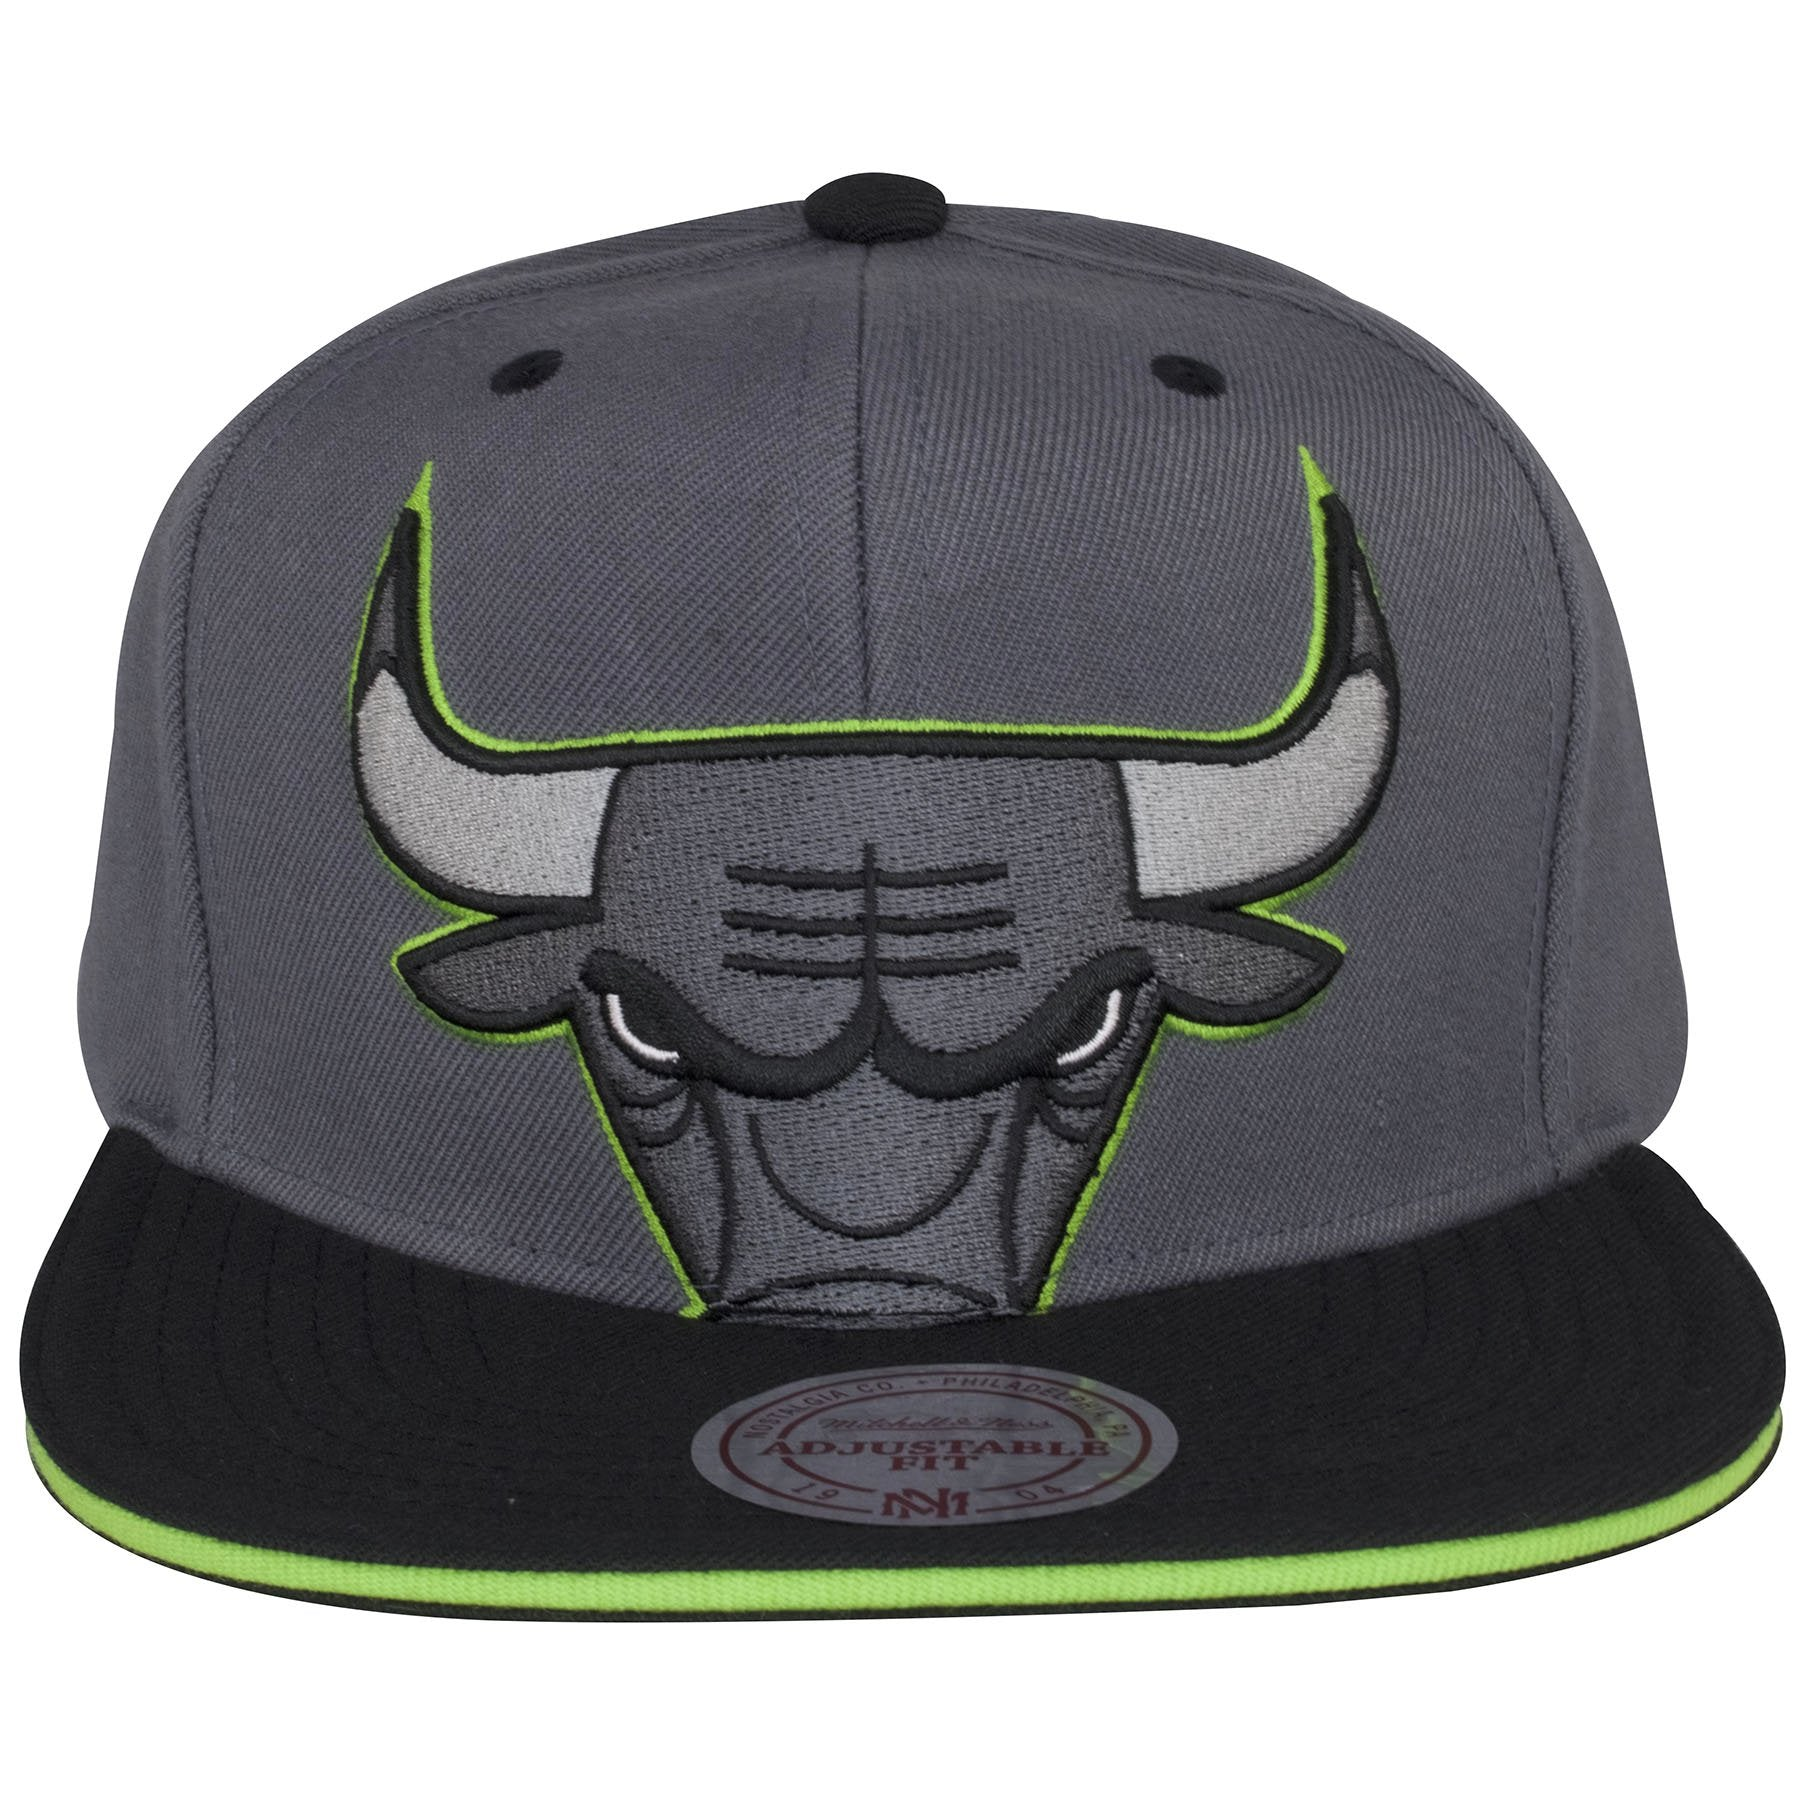 The Chicago Bulls logo on the front of this Air Jordan 13 snapback hat is  outlined 75b43868c41